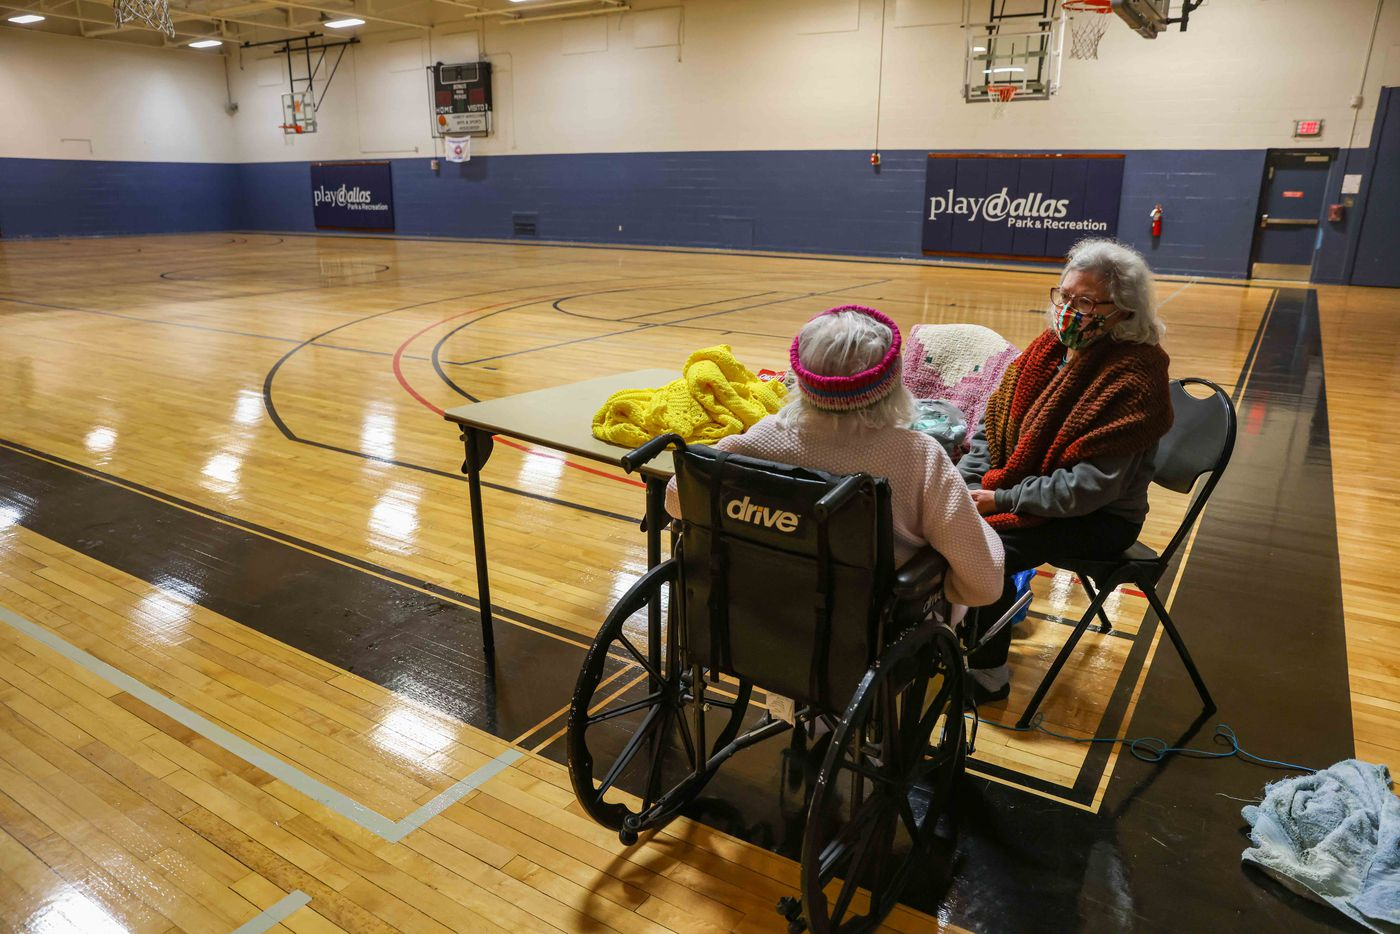 Gloria Sanders, 76, and her mother Maria Barajas, who is 100 years old and has dementia, both spend the day at Pleasant Oaks Recreation Center to warm up on Wednesday, February 18, 2021 in Dallas.